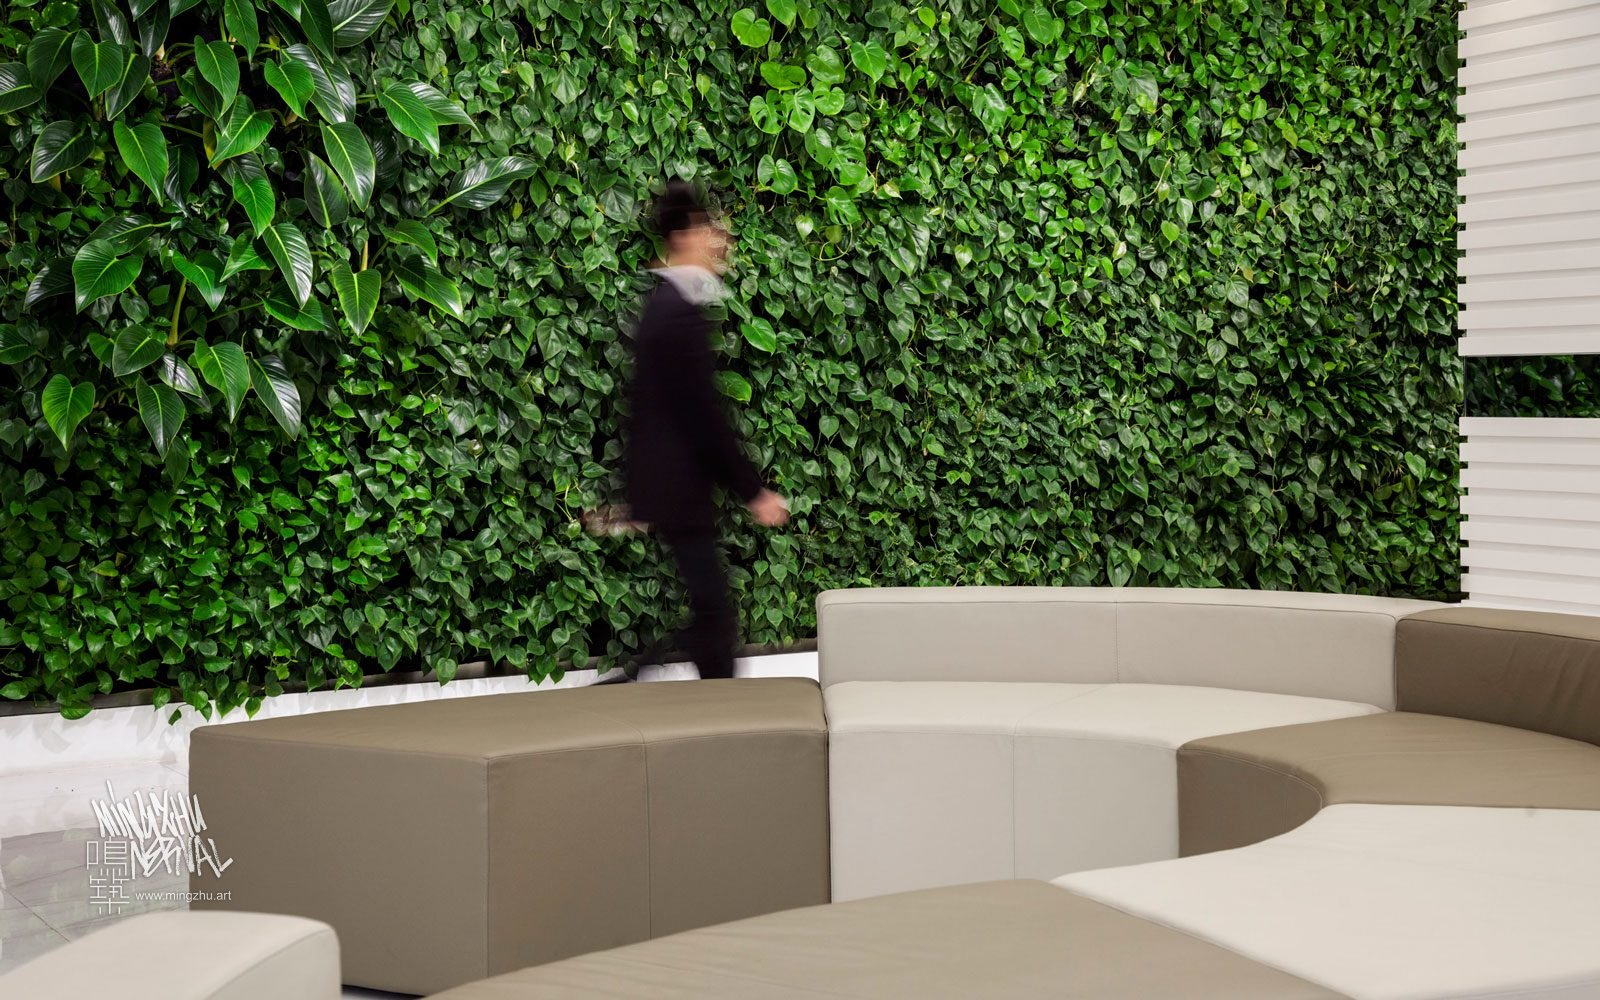 At Mingzhu Nerval, we thrive at creating the most beautiful vertical gardens in the world. For the China Quality Certification Center, we created an enjoyable living wall design - Shanghai, 2013.